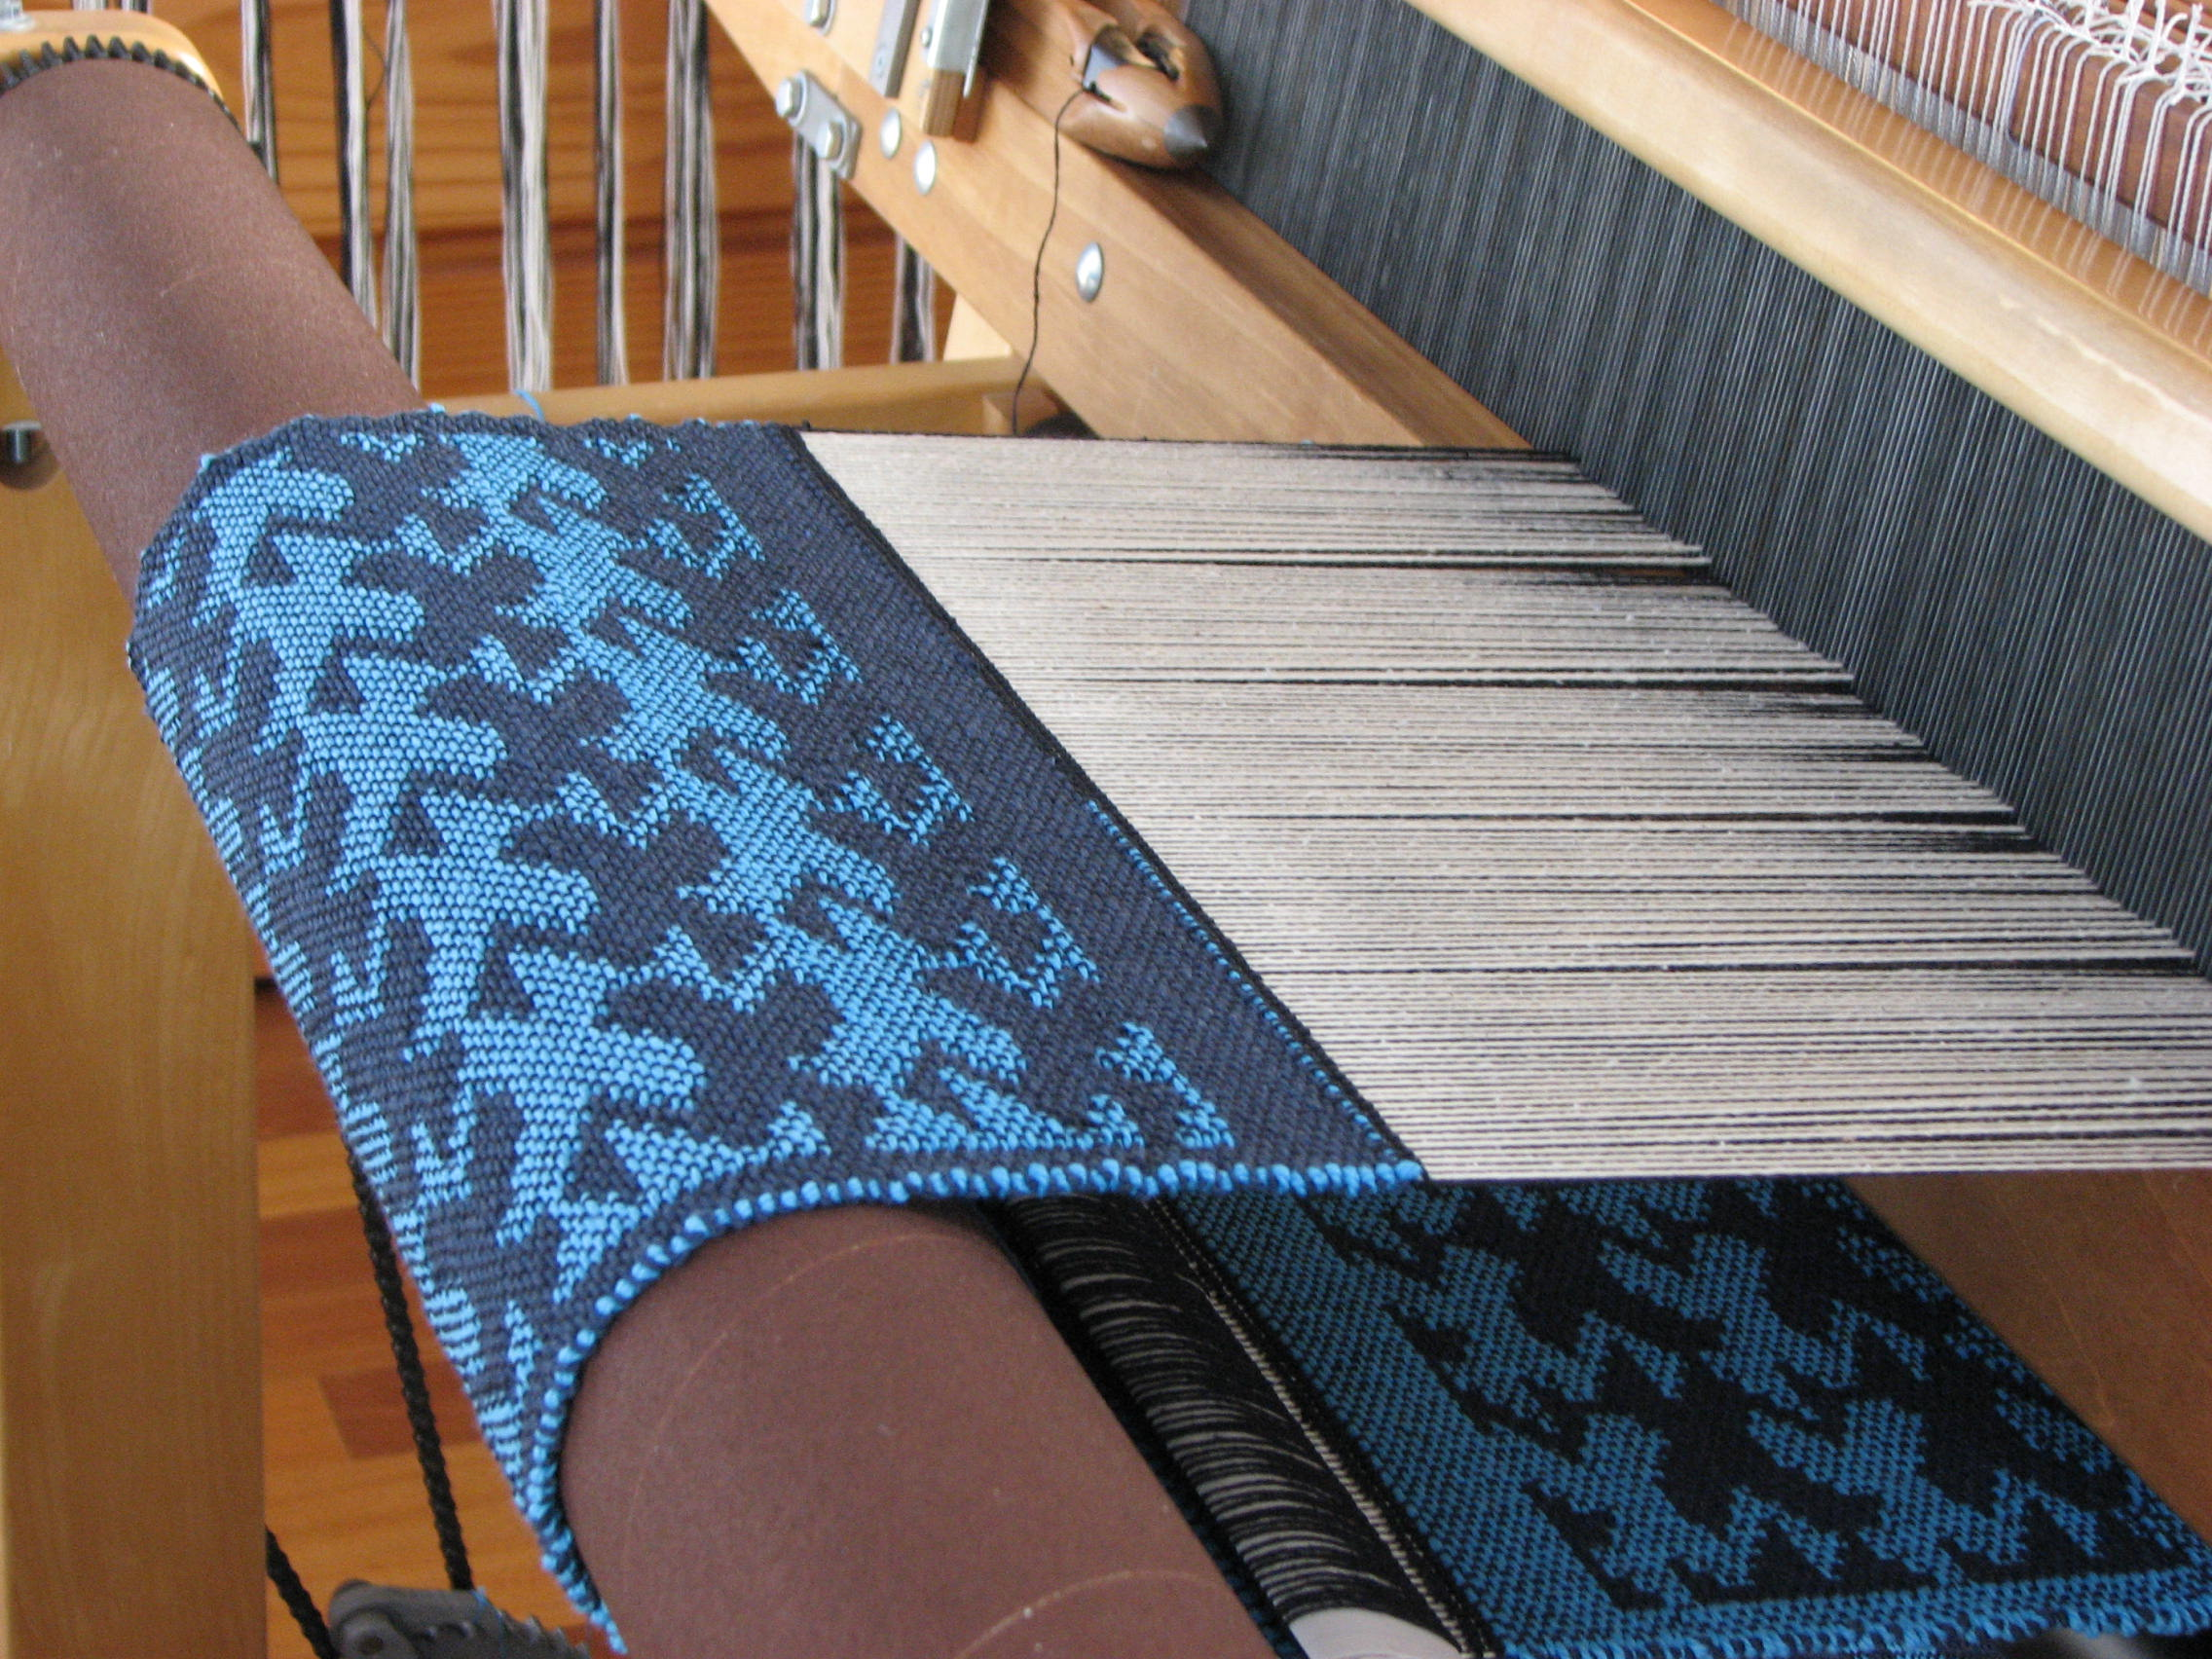 Escher-style Birds on the loom